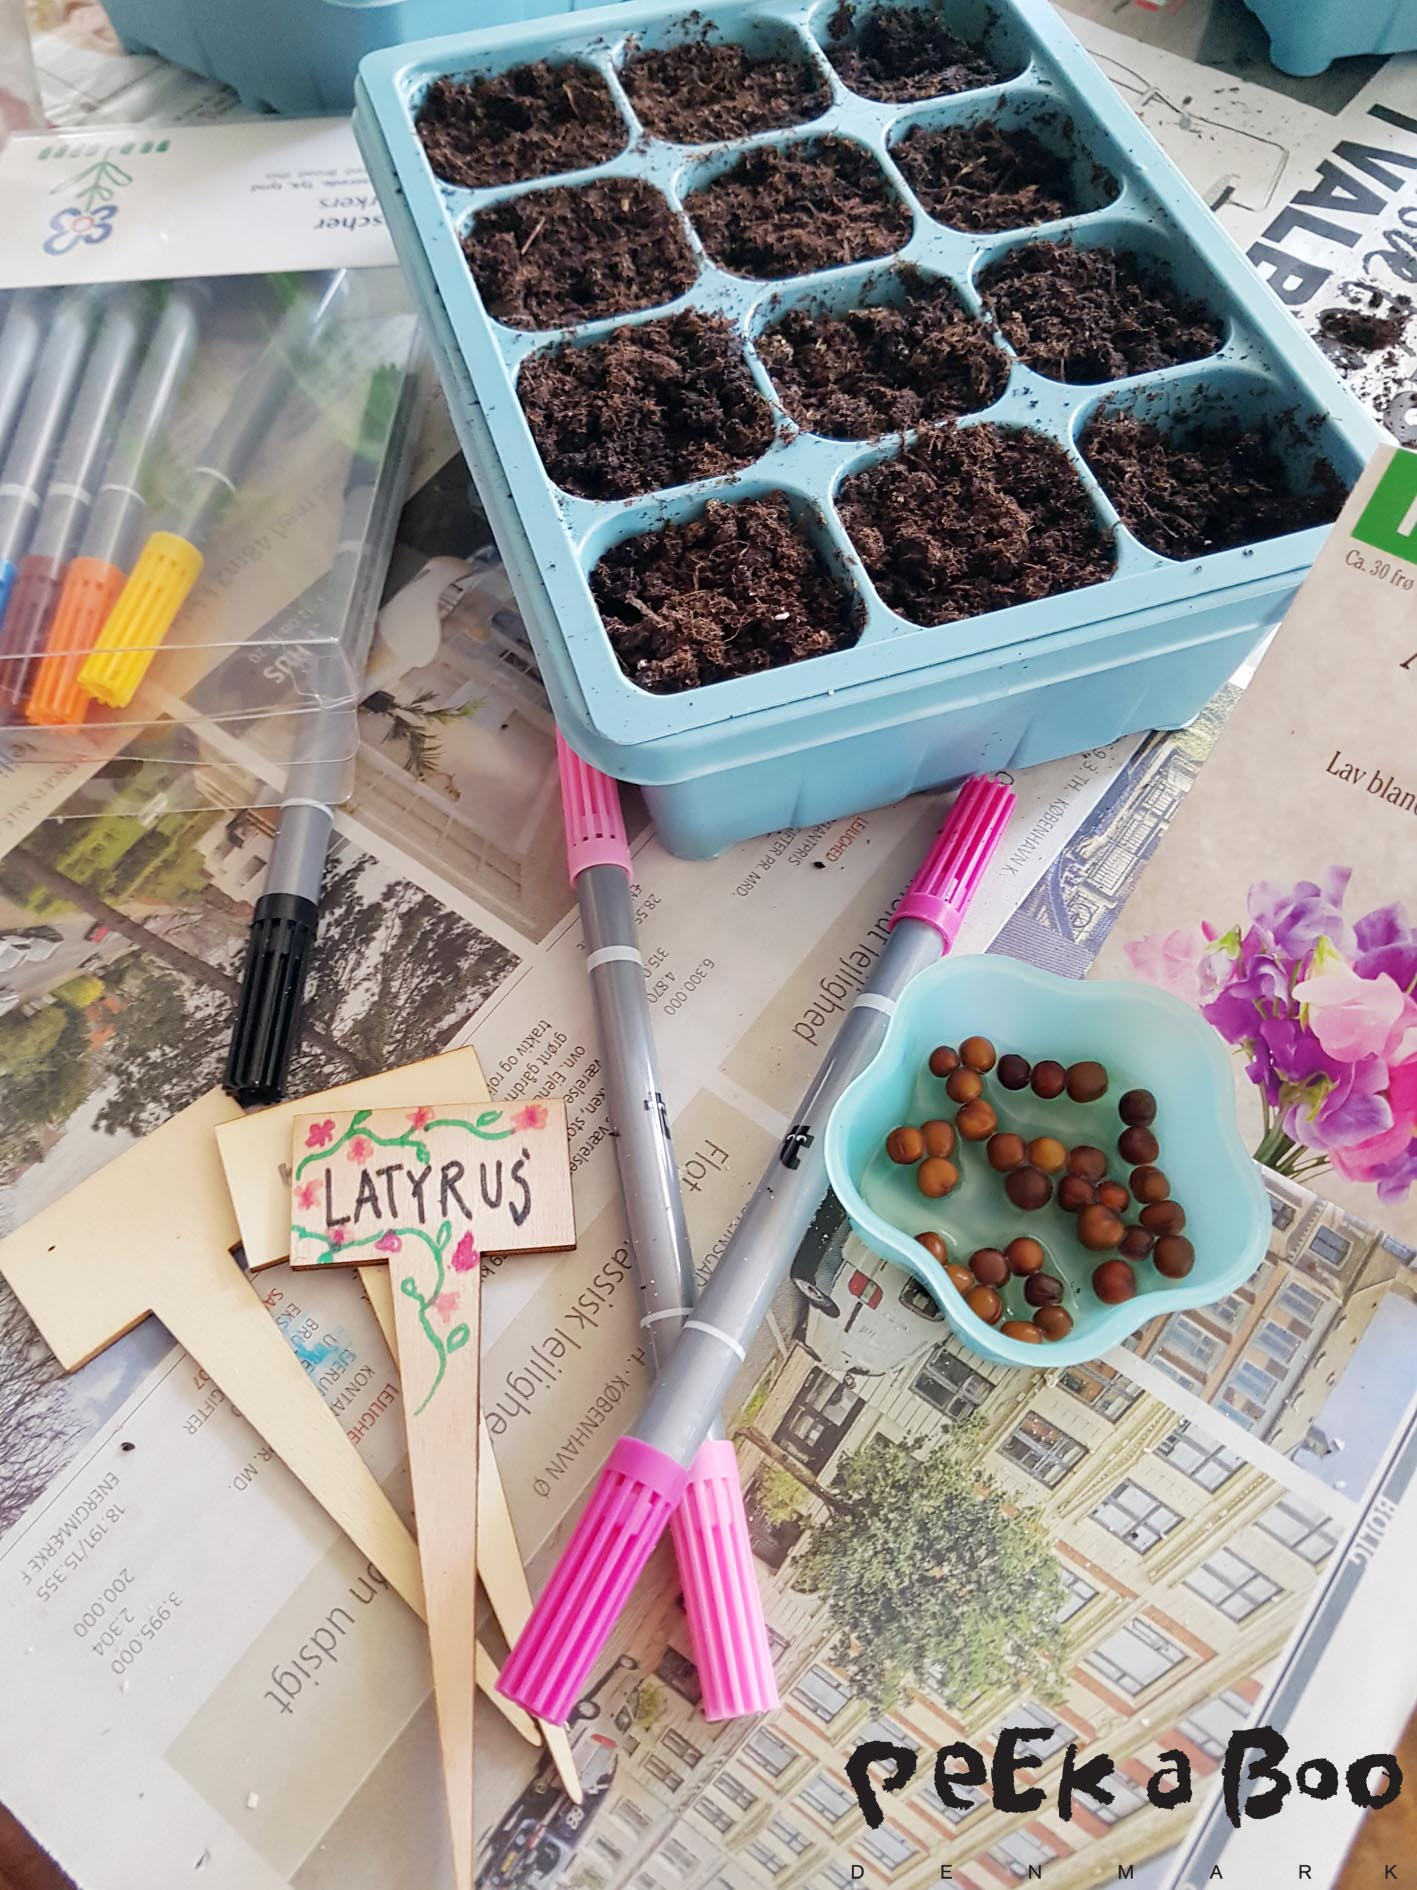 Remember to soak your seeds in water for peas and latyrus overnight, then they will easier sprout.